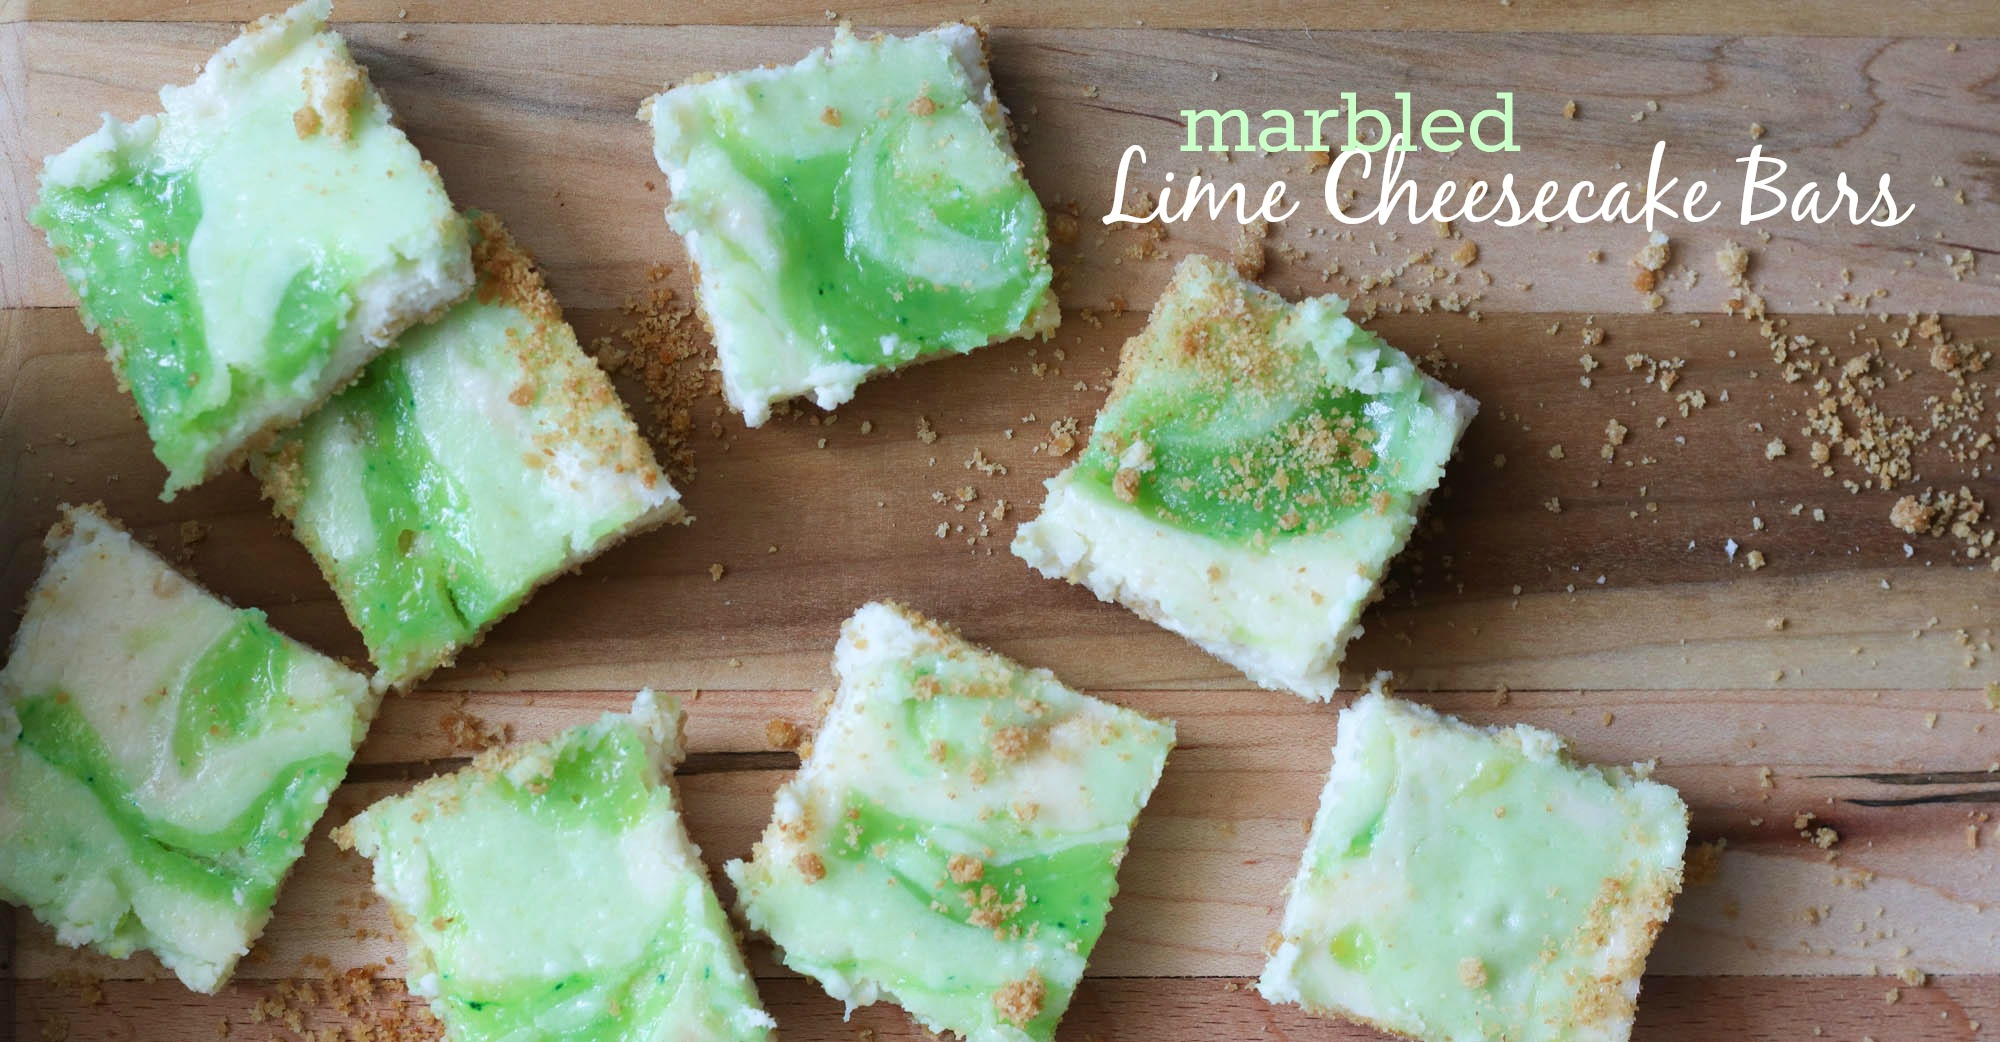 marbled-lime-cheesecake-6b